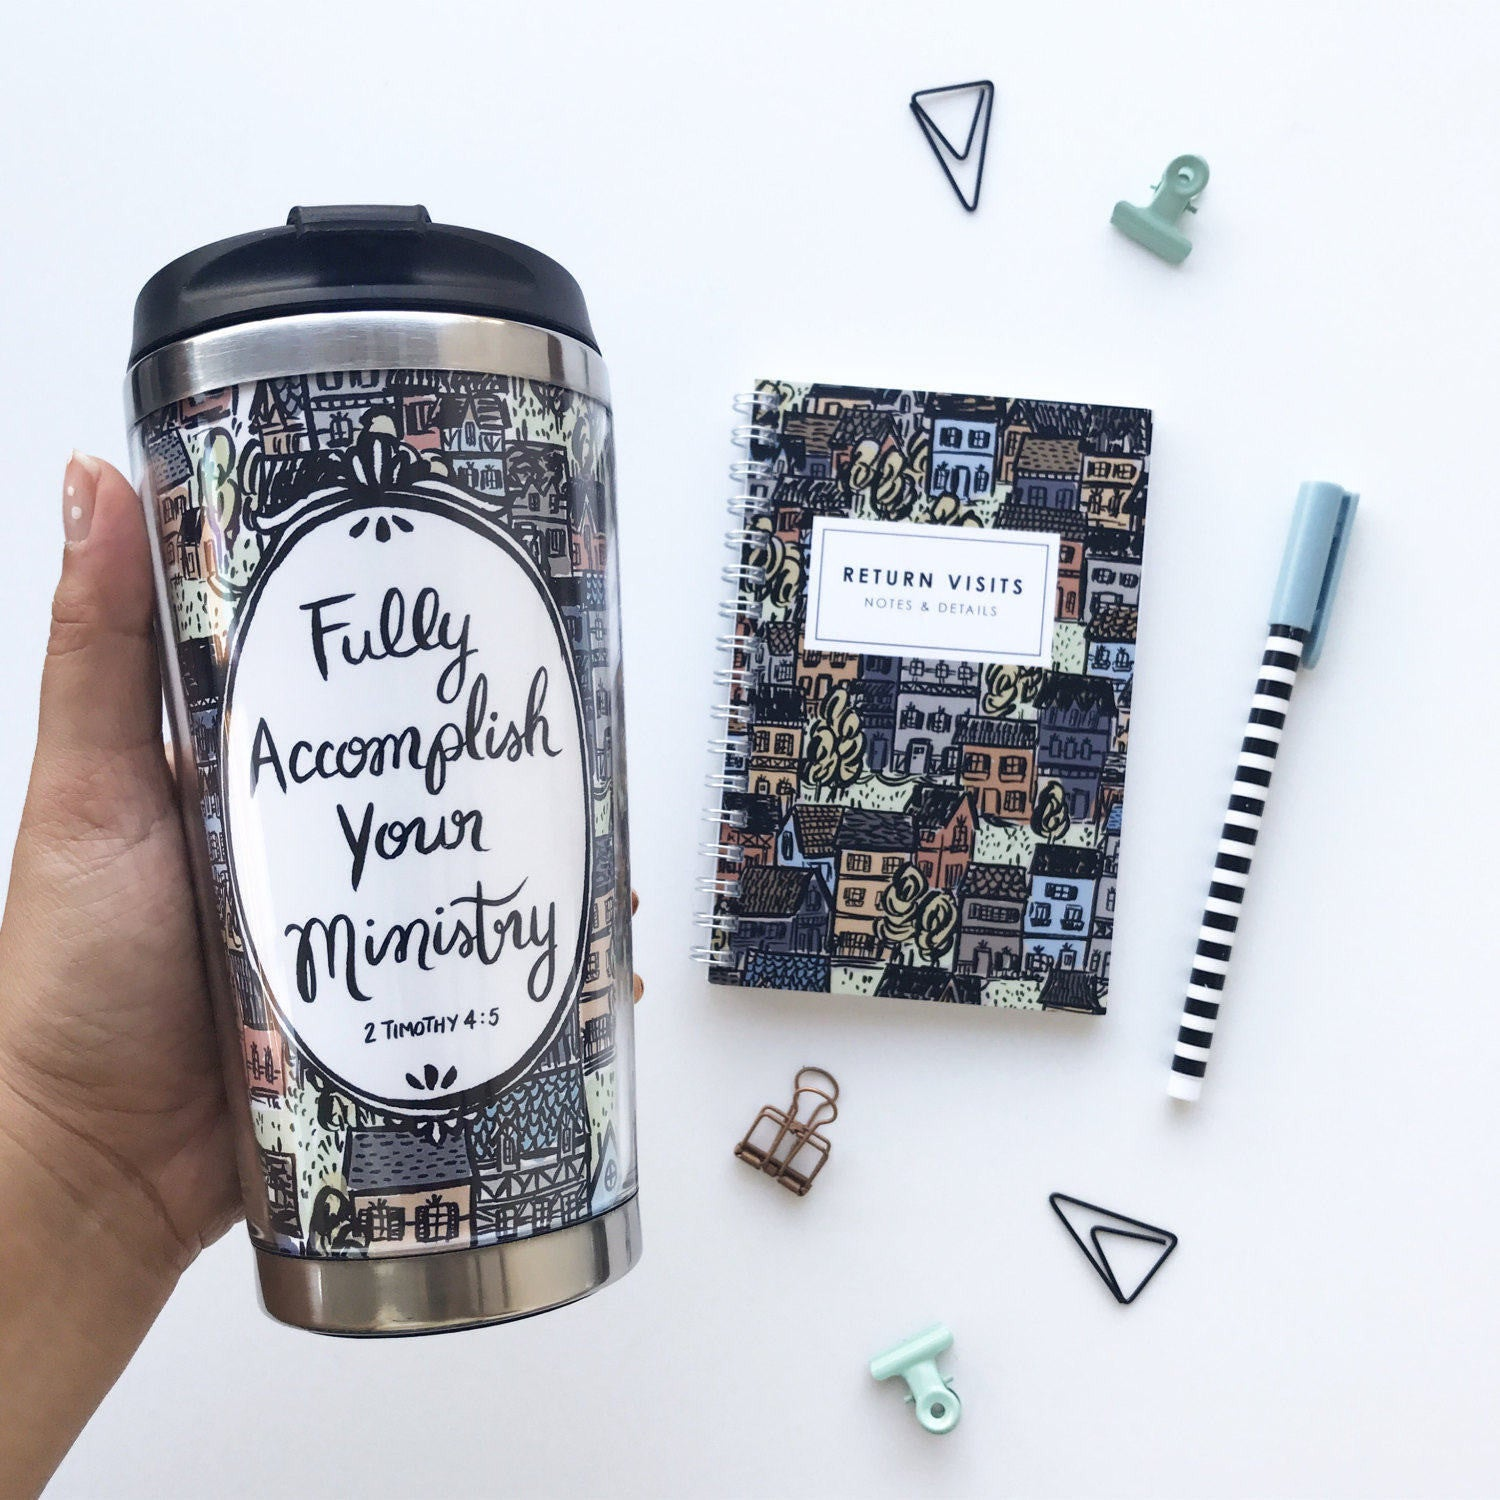 Fully Accomplish Your Ministry Pioneer Travel Mug Return Visit Book Gift Set